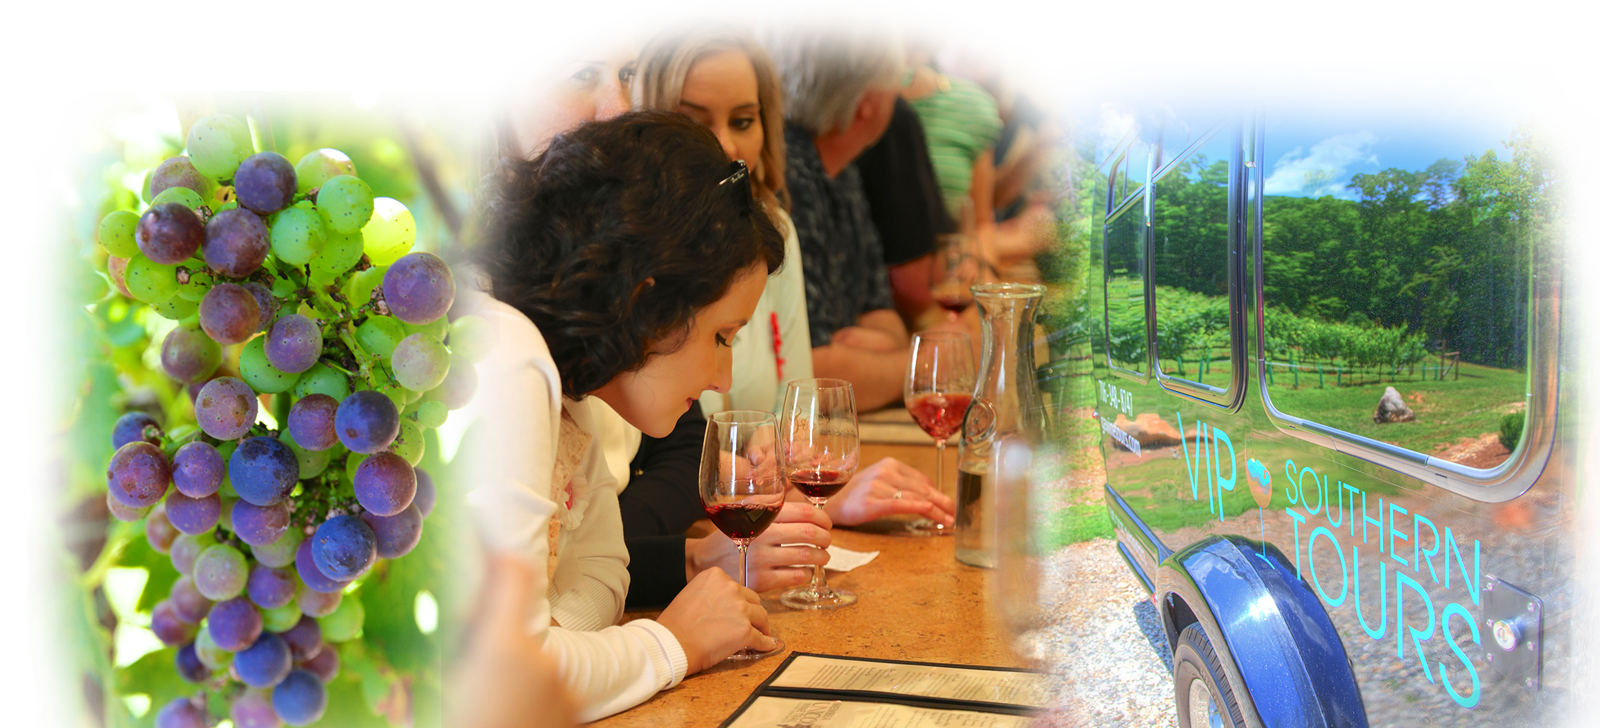 VIP Southern Wine Tours